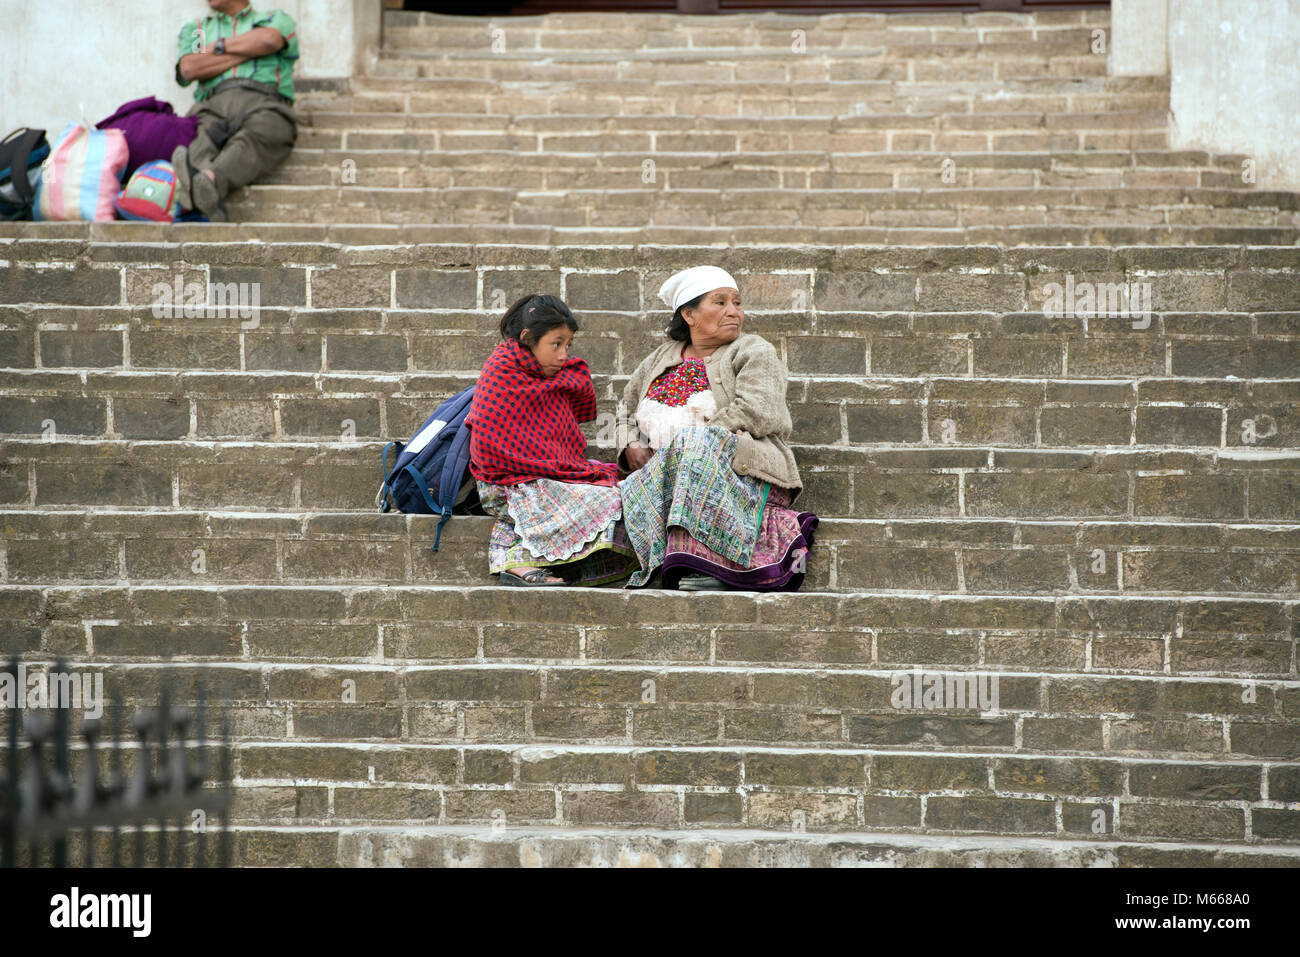 An ethnic, indigenous K'iche' (Quiché) Maya woman and child in traditional dress sitting on the steps - Stock Image